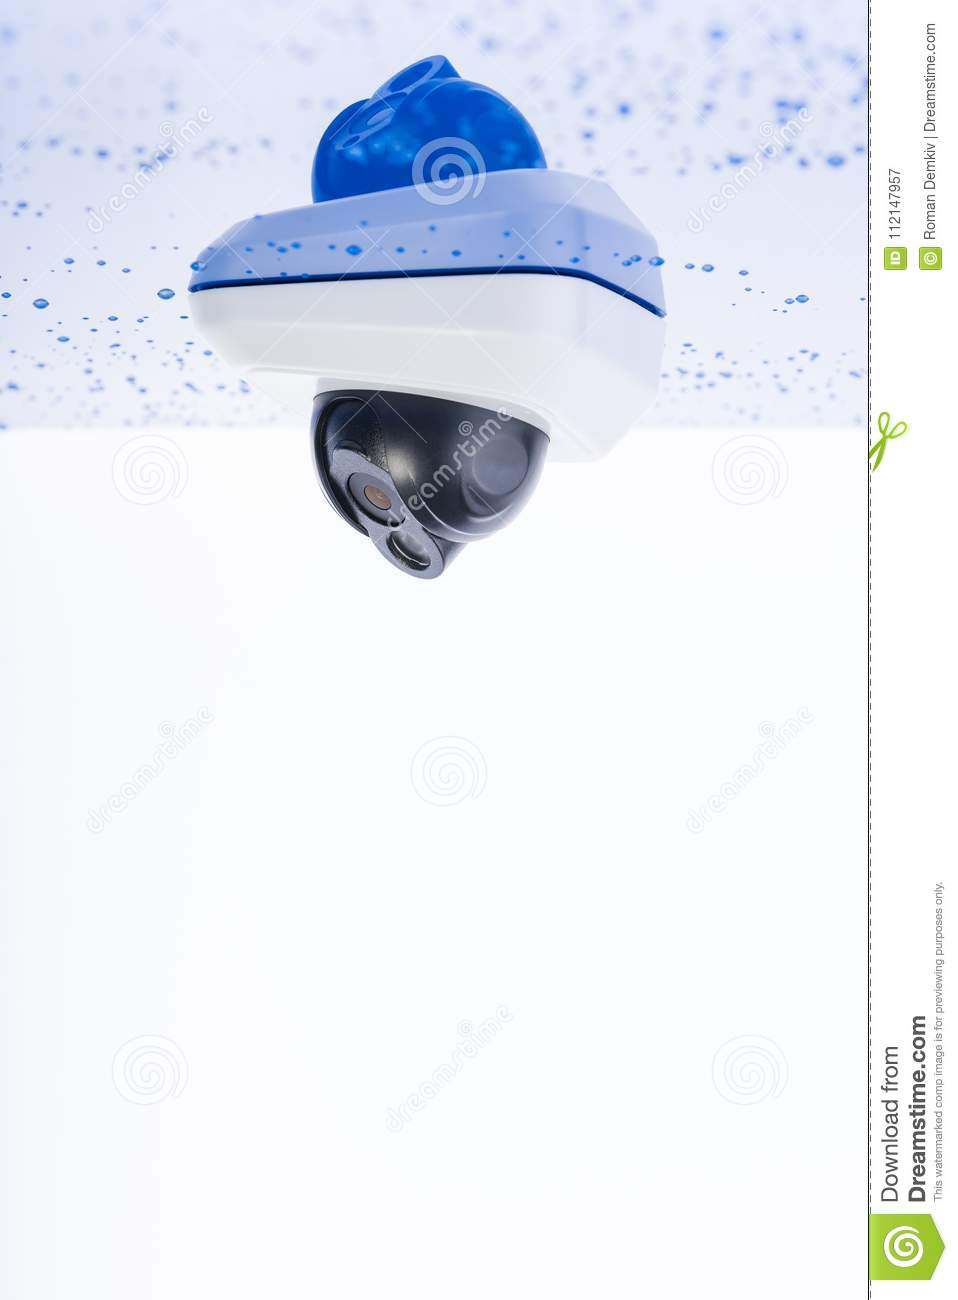 IP dome camera under the roof. Concept - technology and security, copyspace for text or design elements